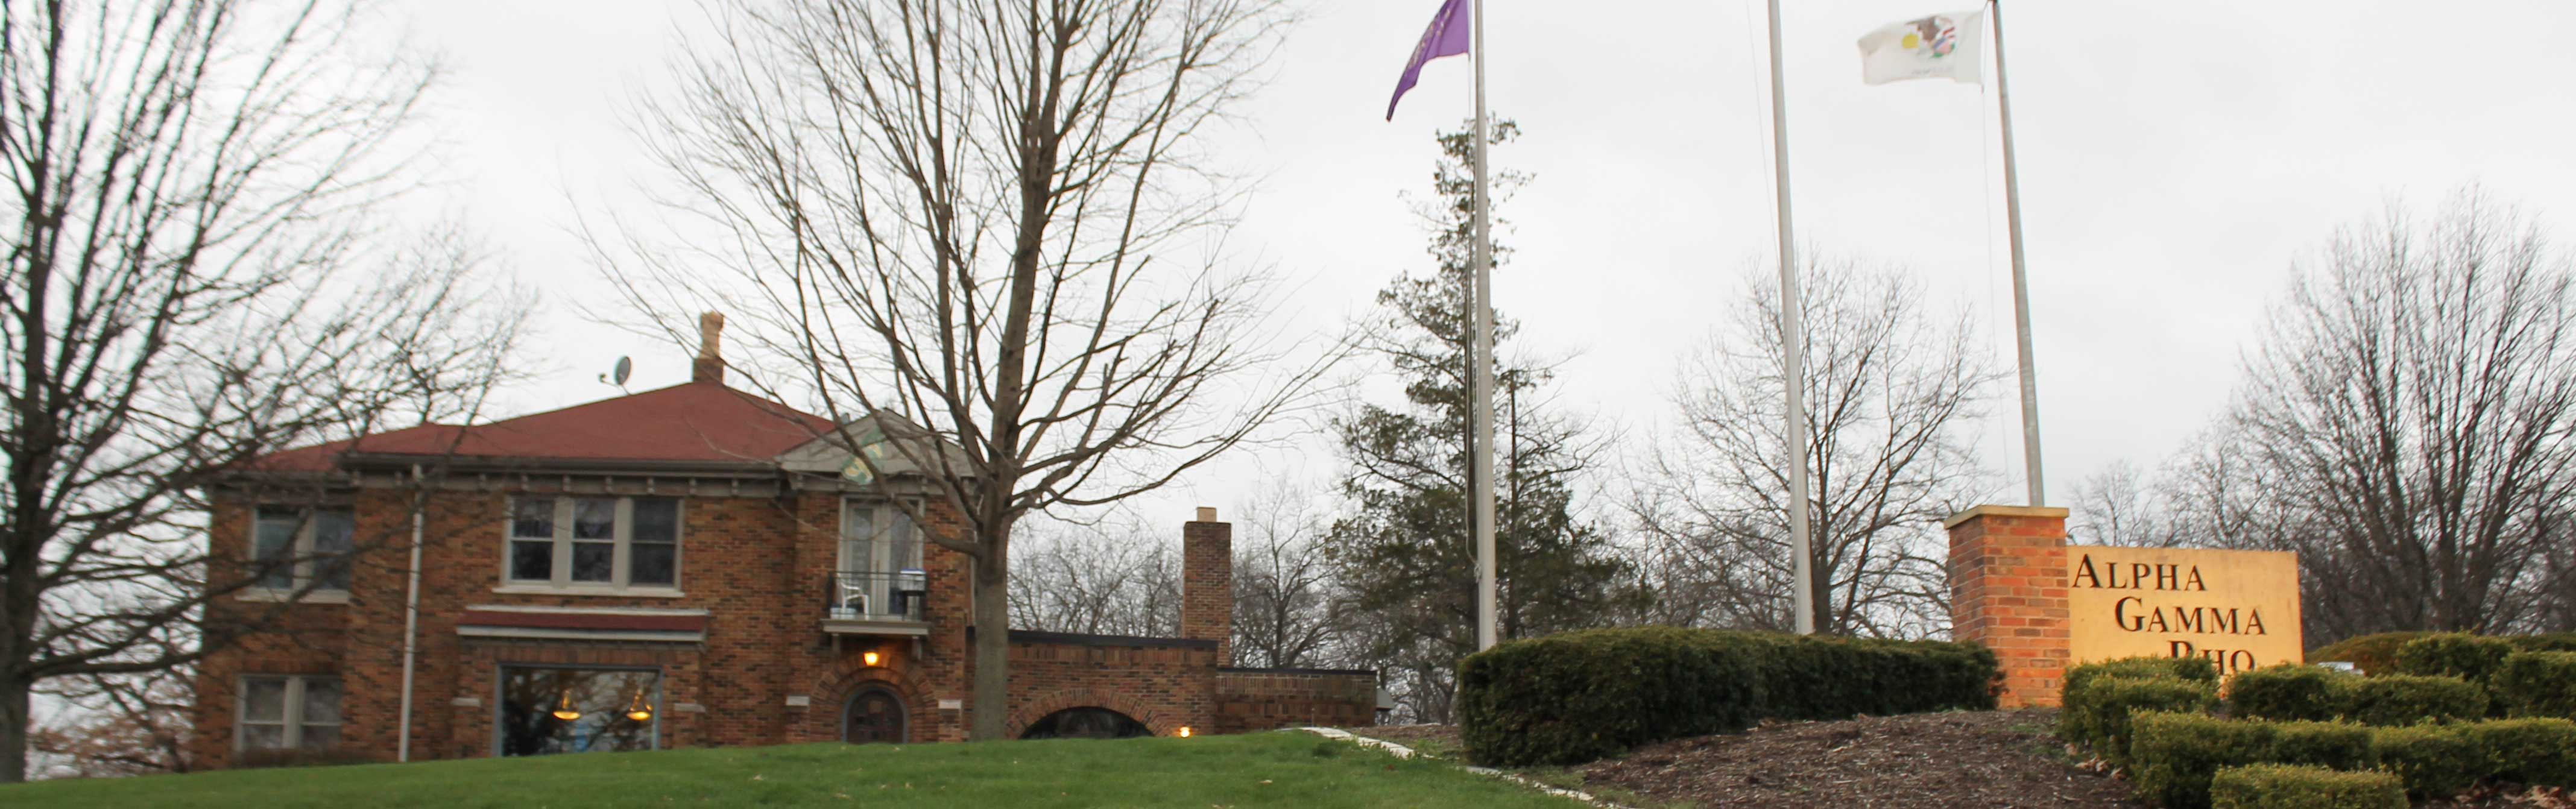 Western Illinois University's chapter of Alpha Gamma Row is under interim suspension for violating the student code of conduct in regards to hazing accusations